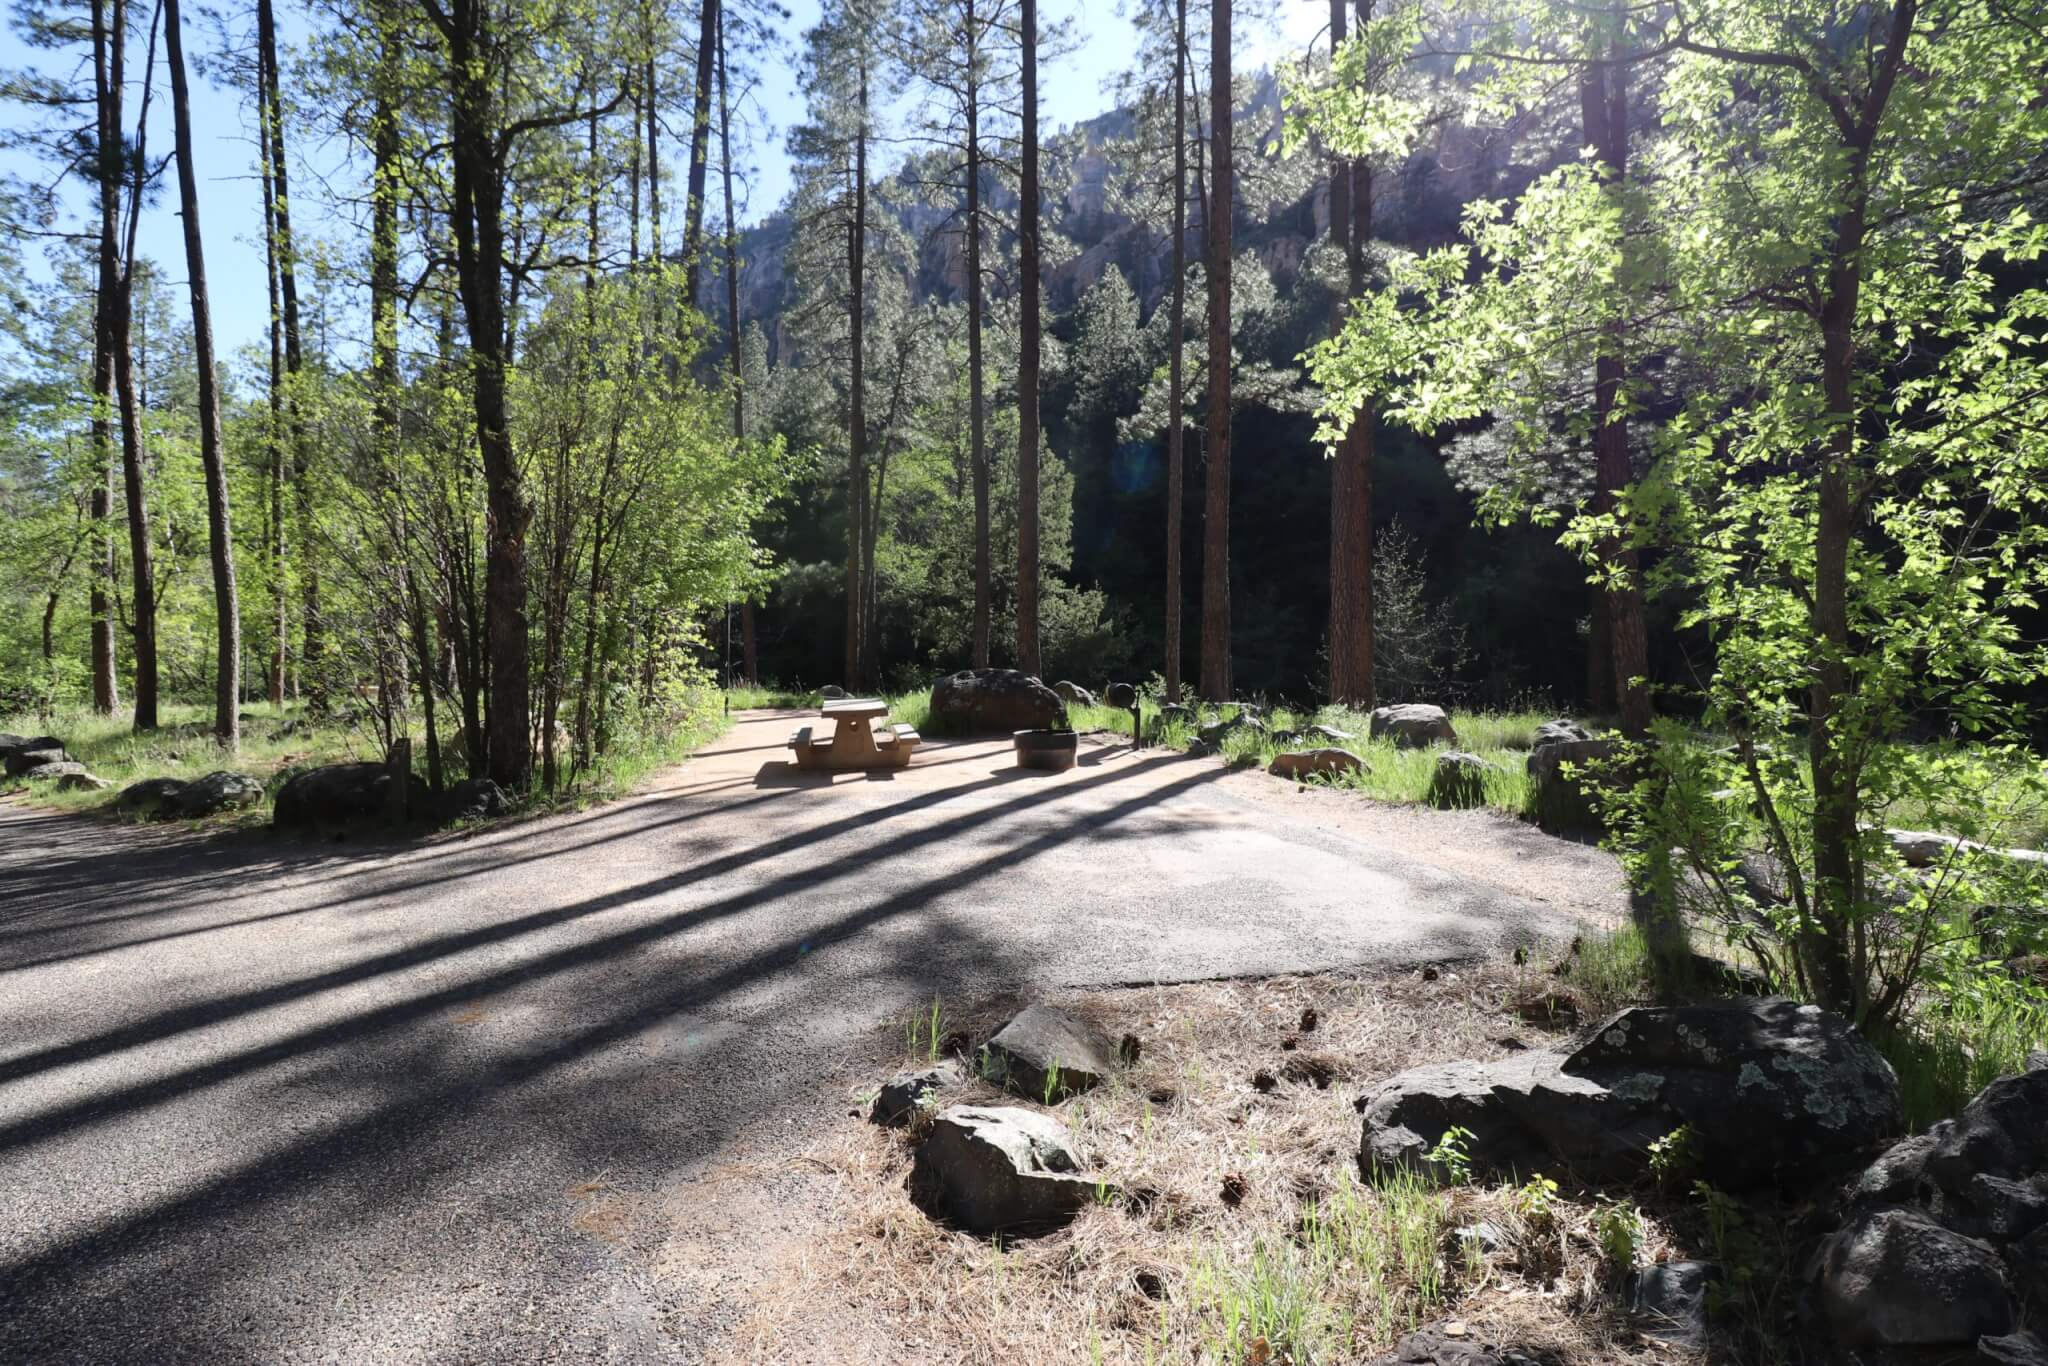 Sedona Area Campgrounds to reopen on May 20, 2020 - Pine Flat #26